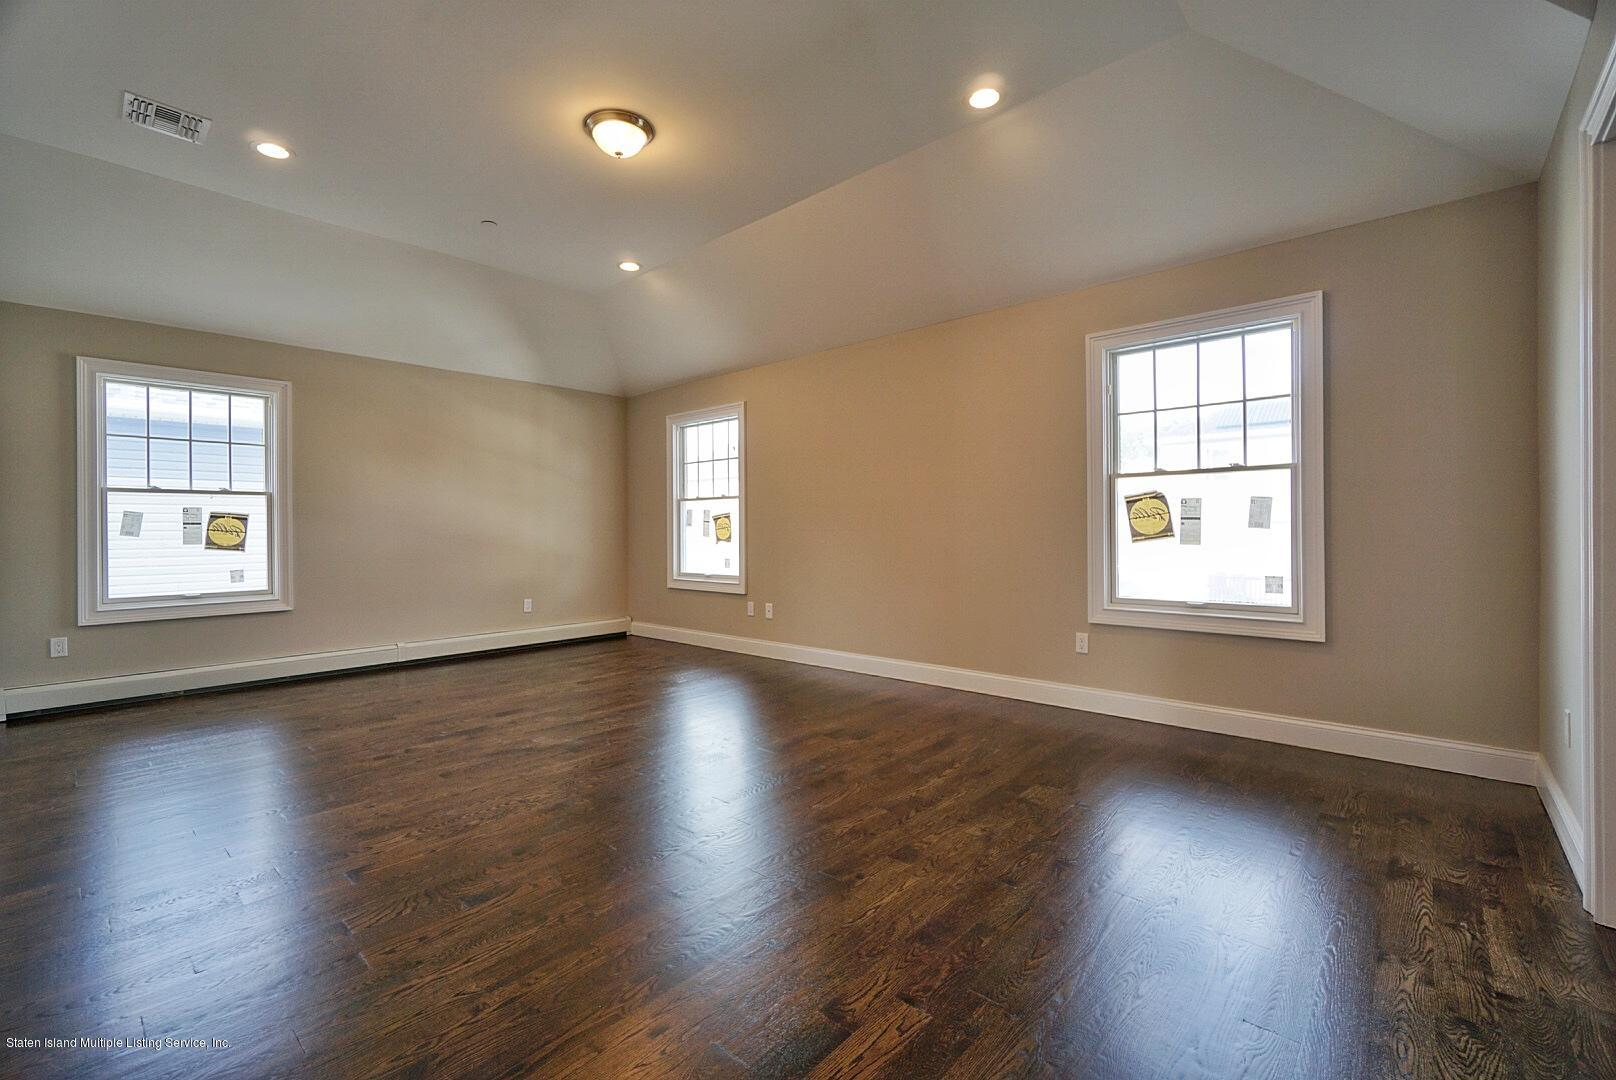 Two Family - Detached 169 Bathgate St   Staten Island, NY 10312, MLS-1122726-16